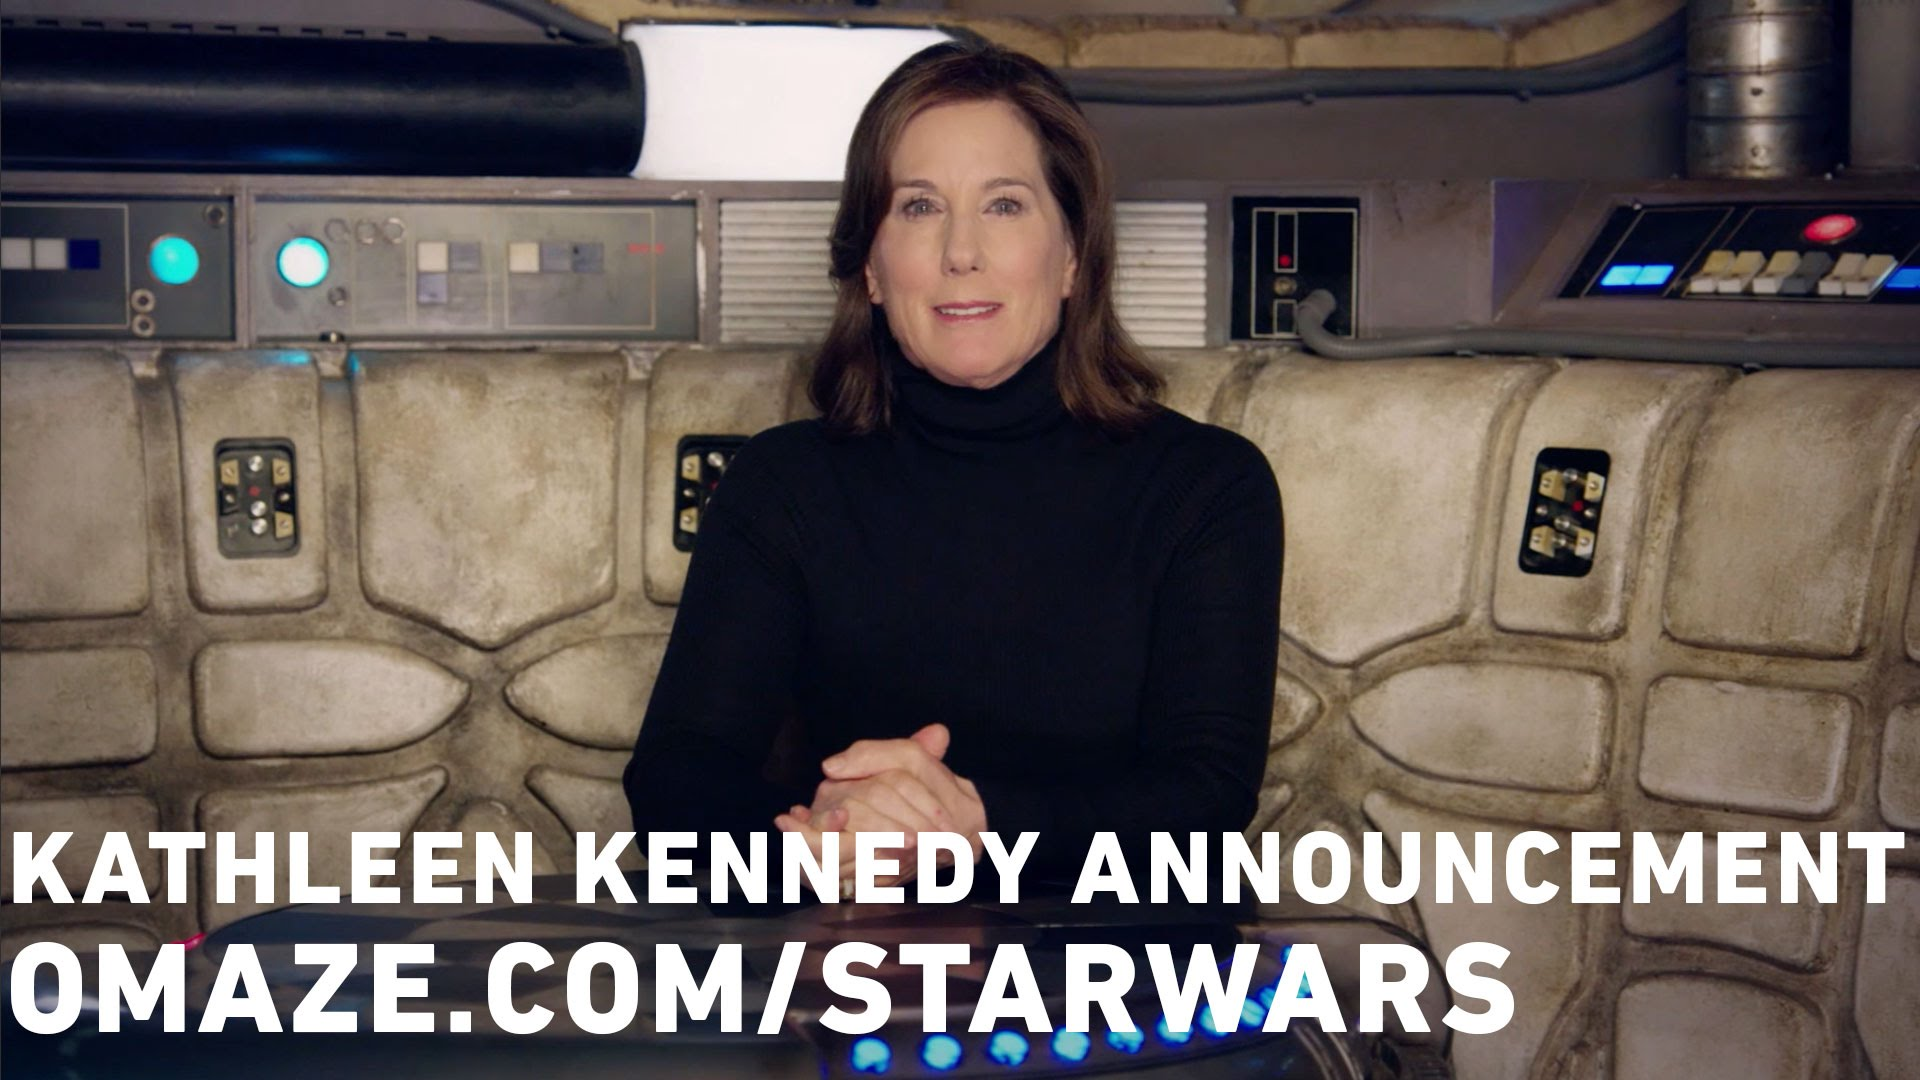 Kathleen Kennedy Announces Chance for TWO MORE Winners to Attend Star Wars Premiere